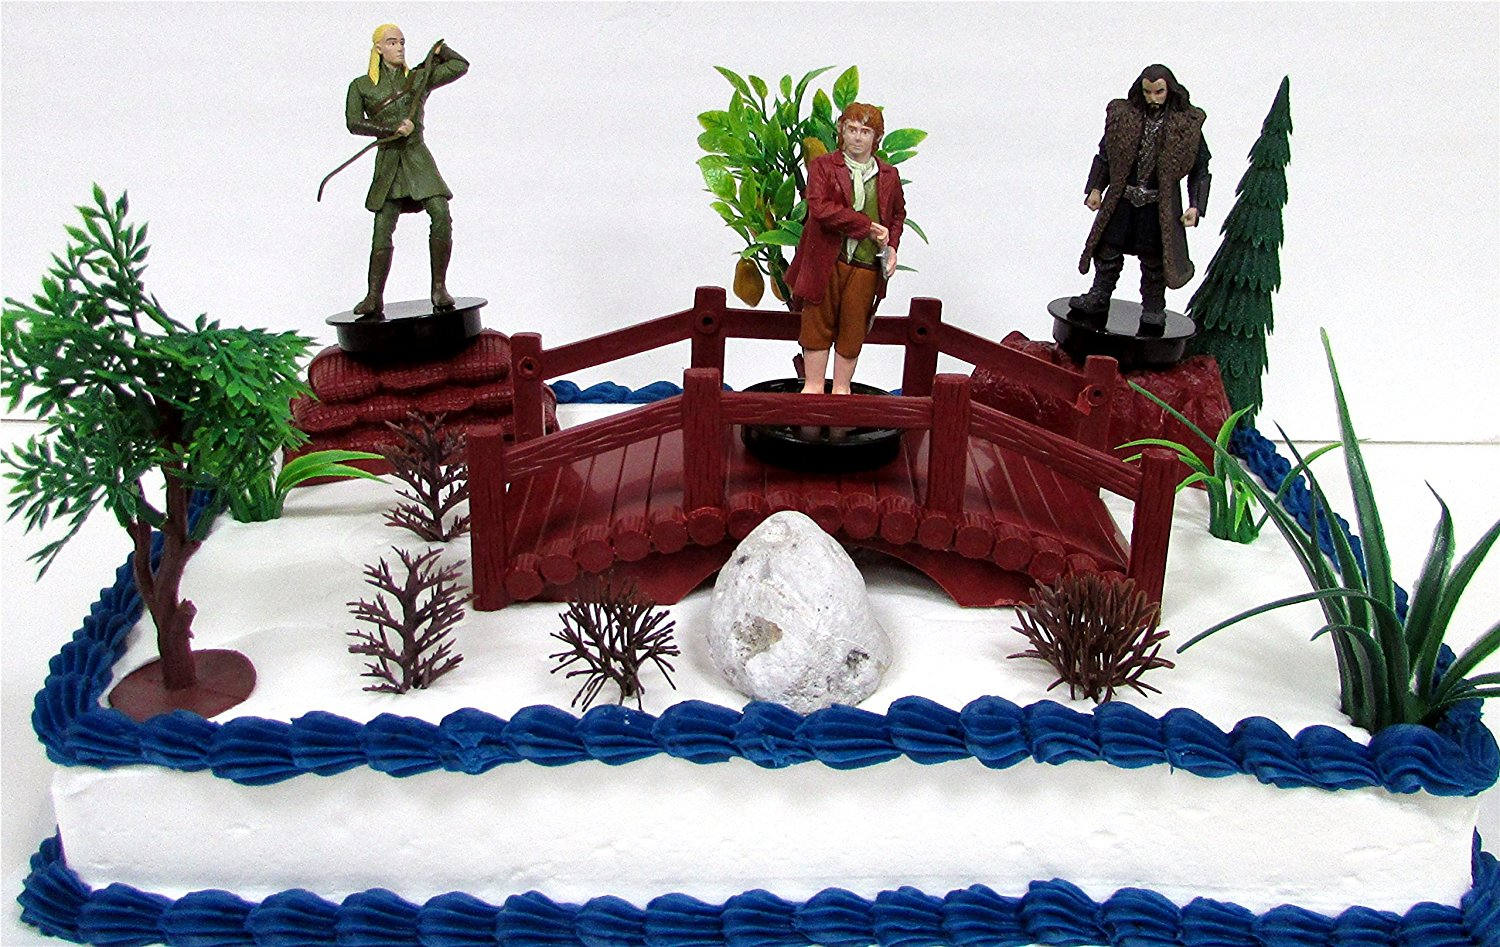 Buy The Hobbit An Unexpected Journey Birthday Cake Topper Set